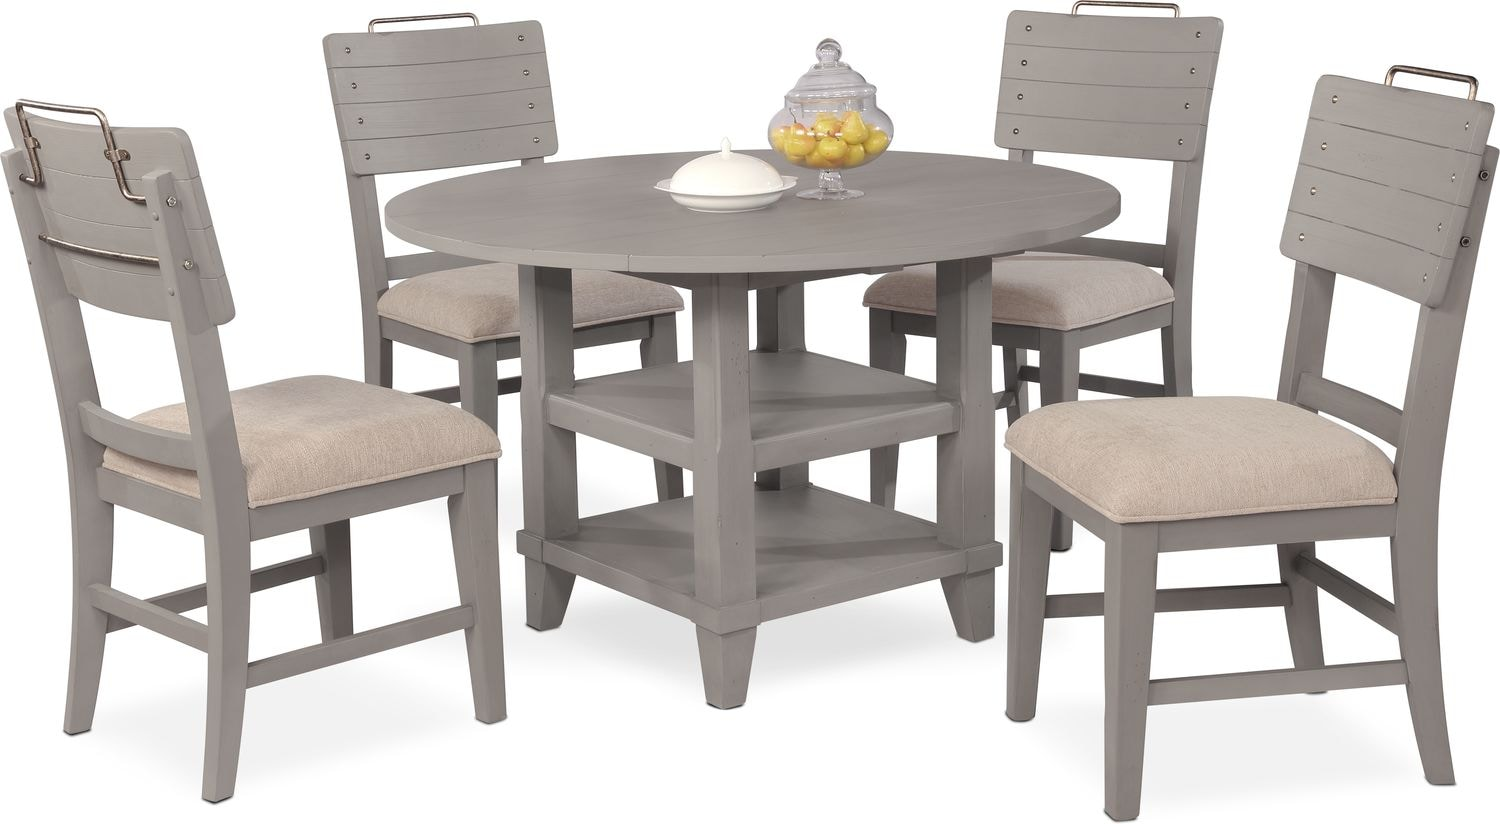 Dining Room Furniture - New Haven Round Dining Table and 4 Shiplap Side Chairs - Gray